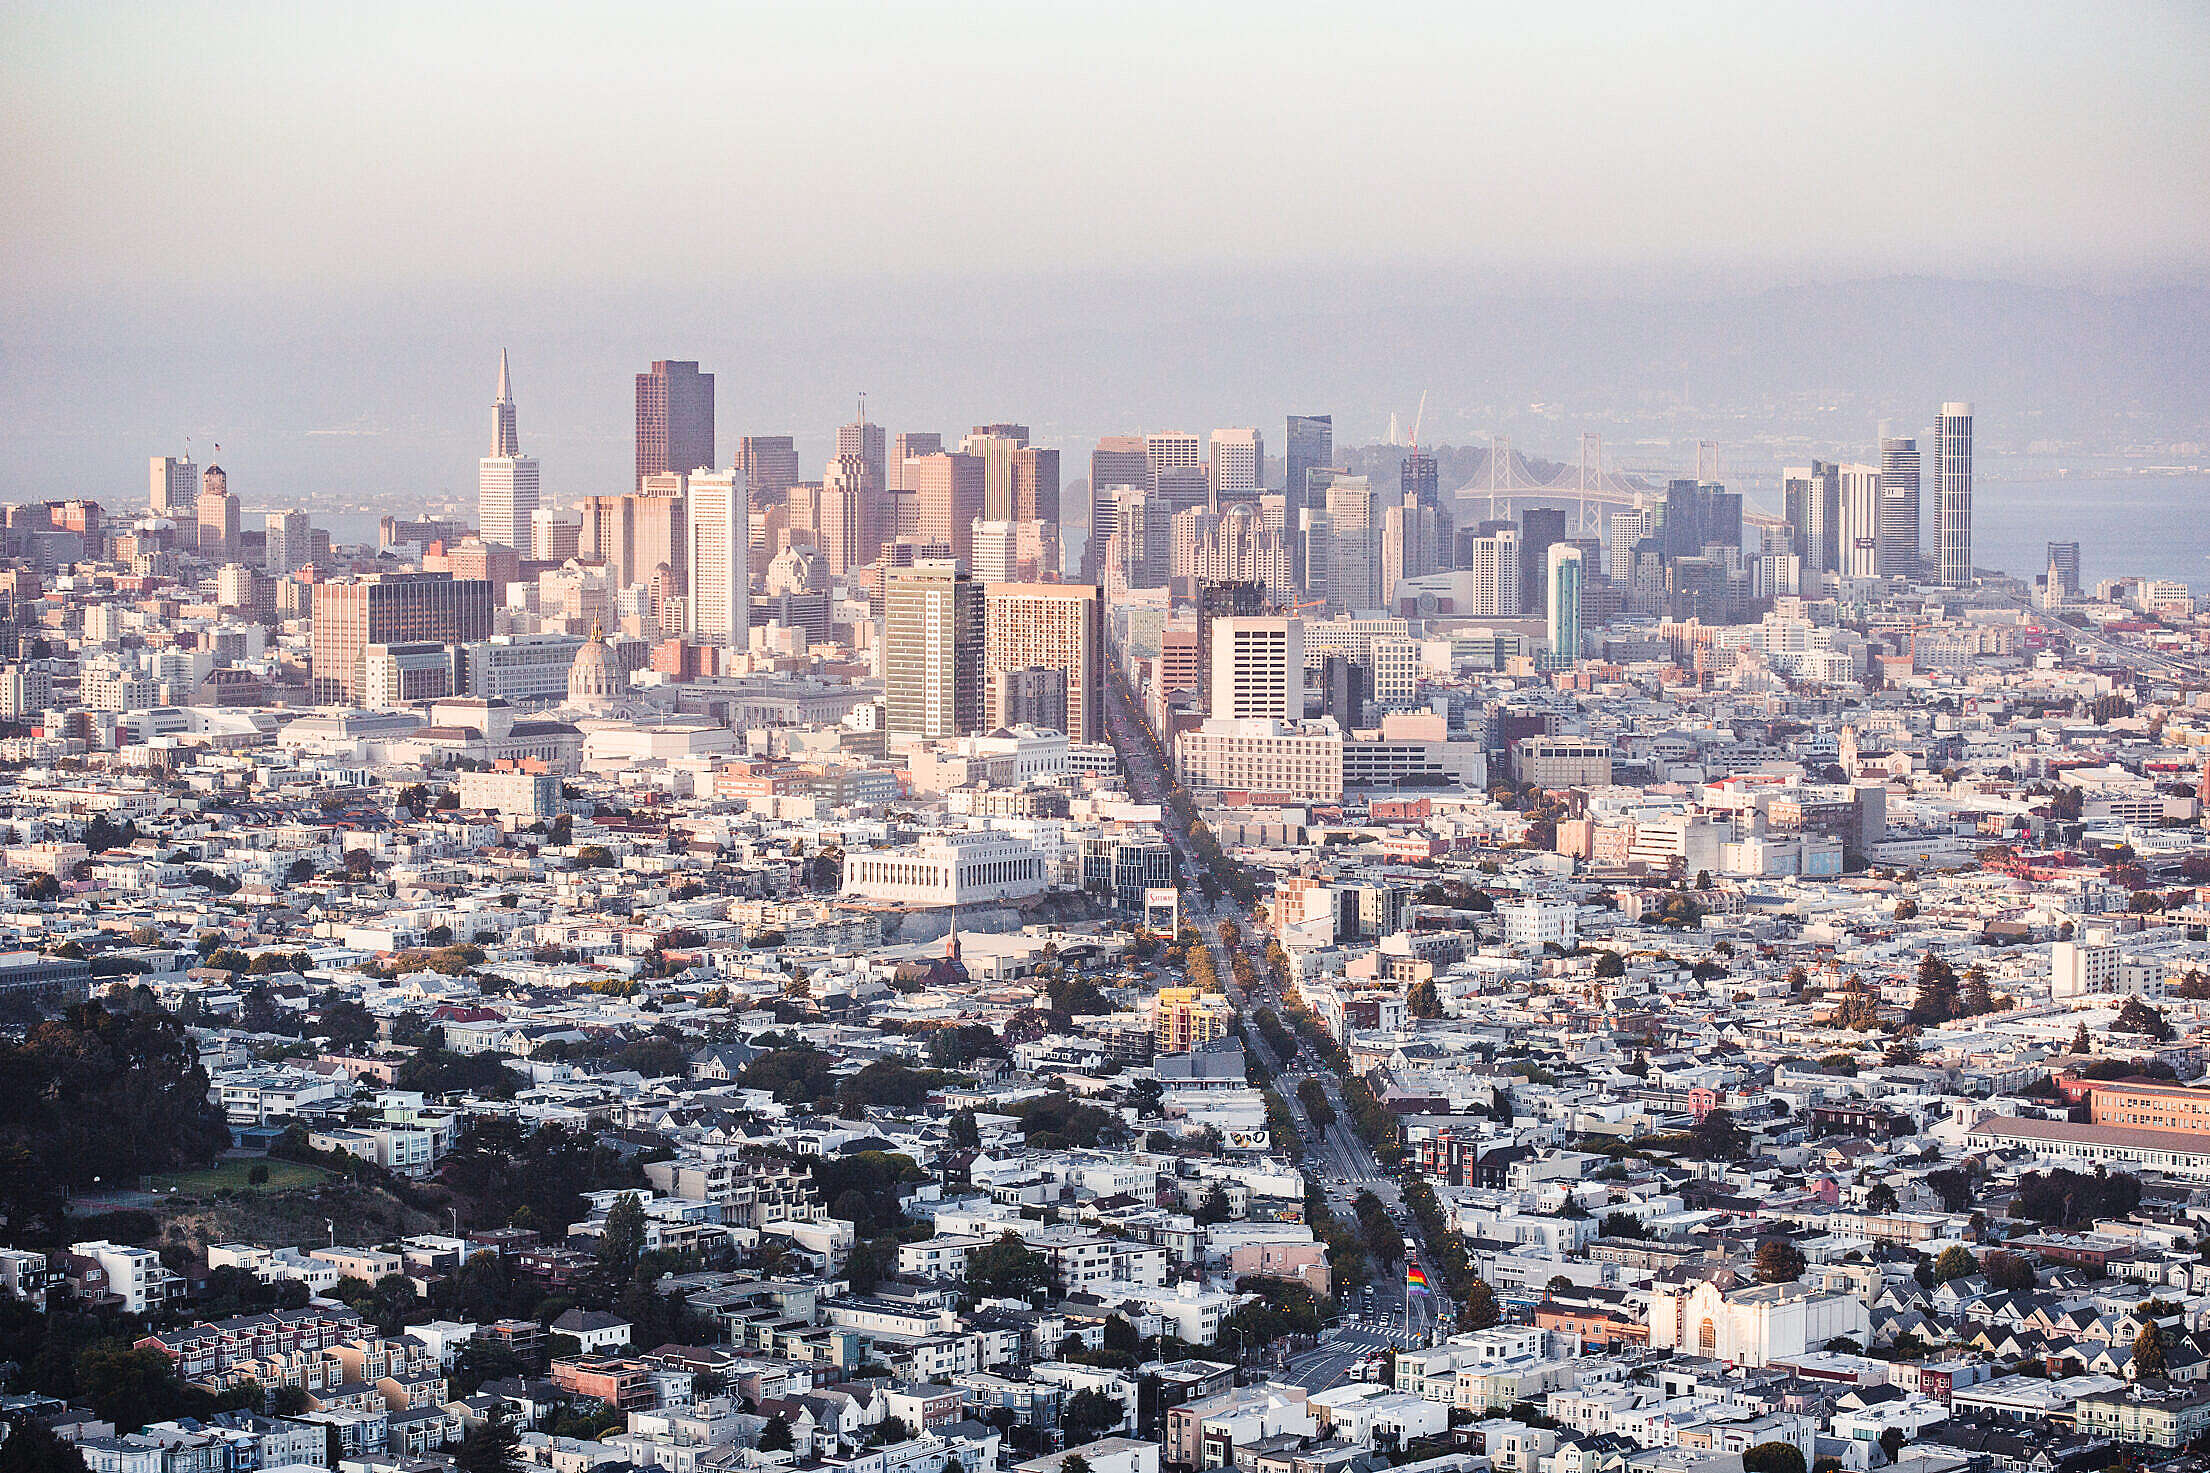 Cityscape View of Financial District Skyscrapers in San Francisco, California Free Stock Photo